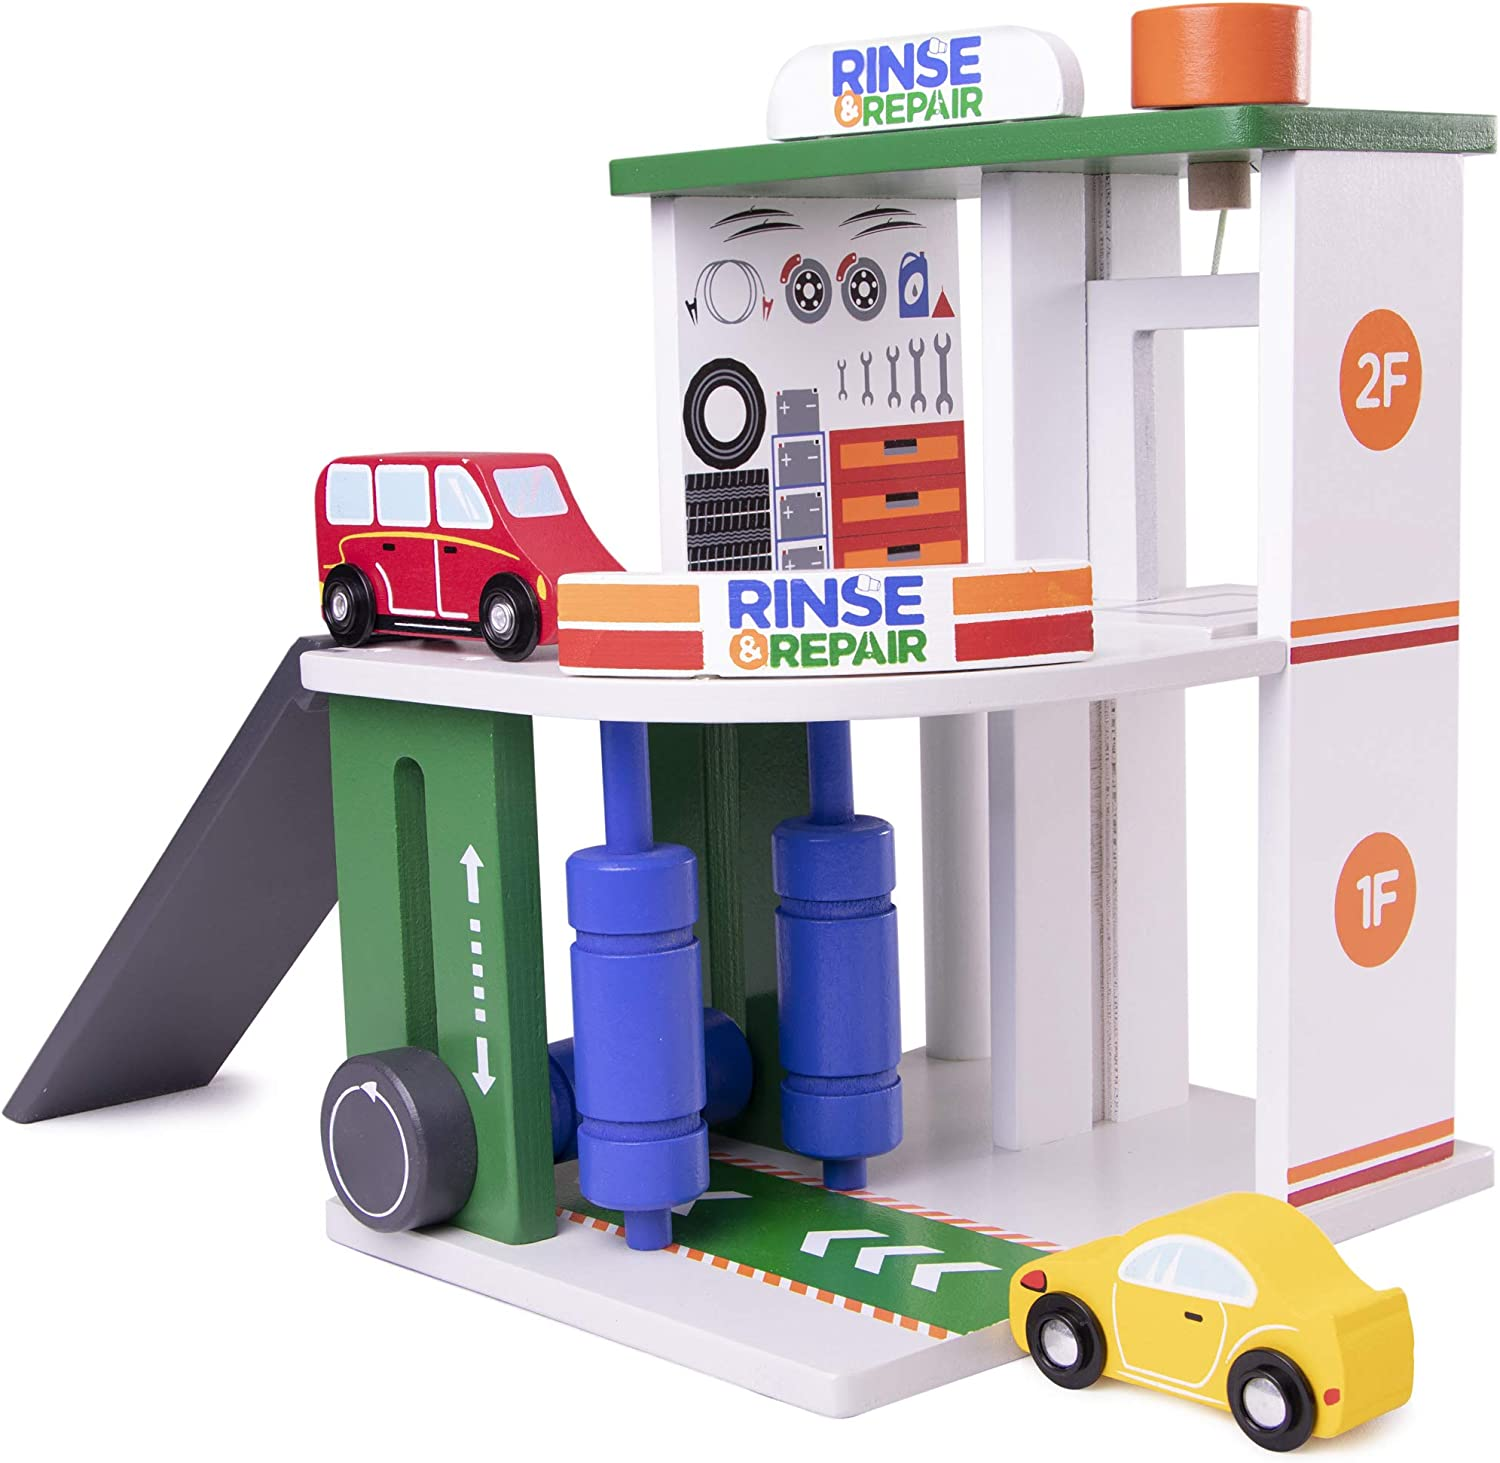 Imagination Generation Rinse & Repair Car Wash and Service Station | 2-in-1 Wooden Playset with Car Wash, Working Elevator, and Ramp | Includes 2 Colorful Toy Cars